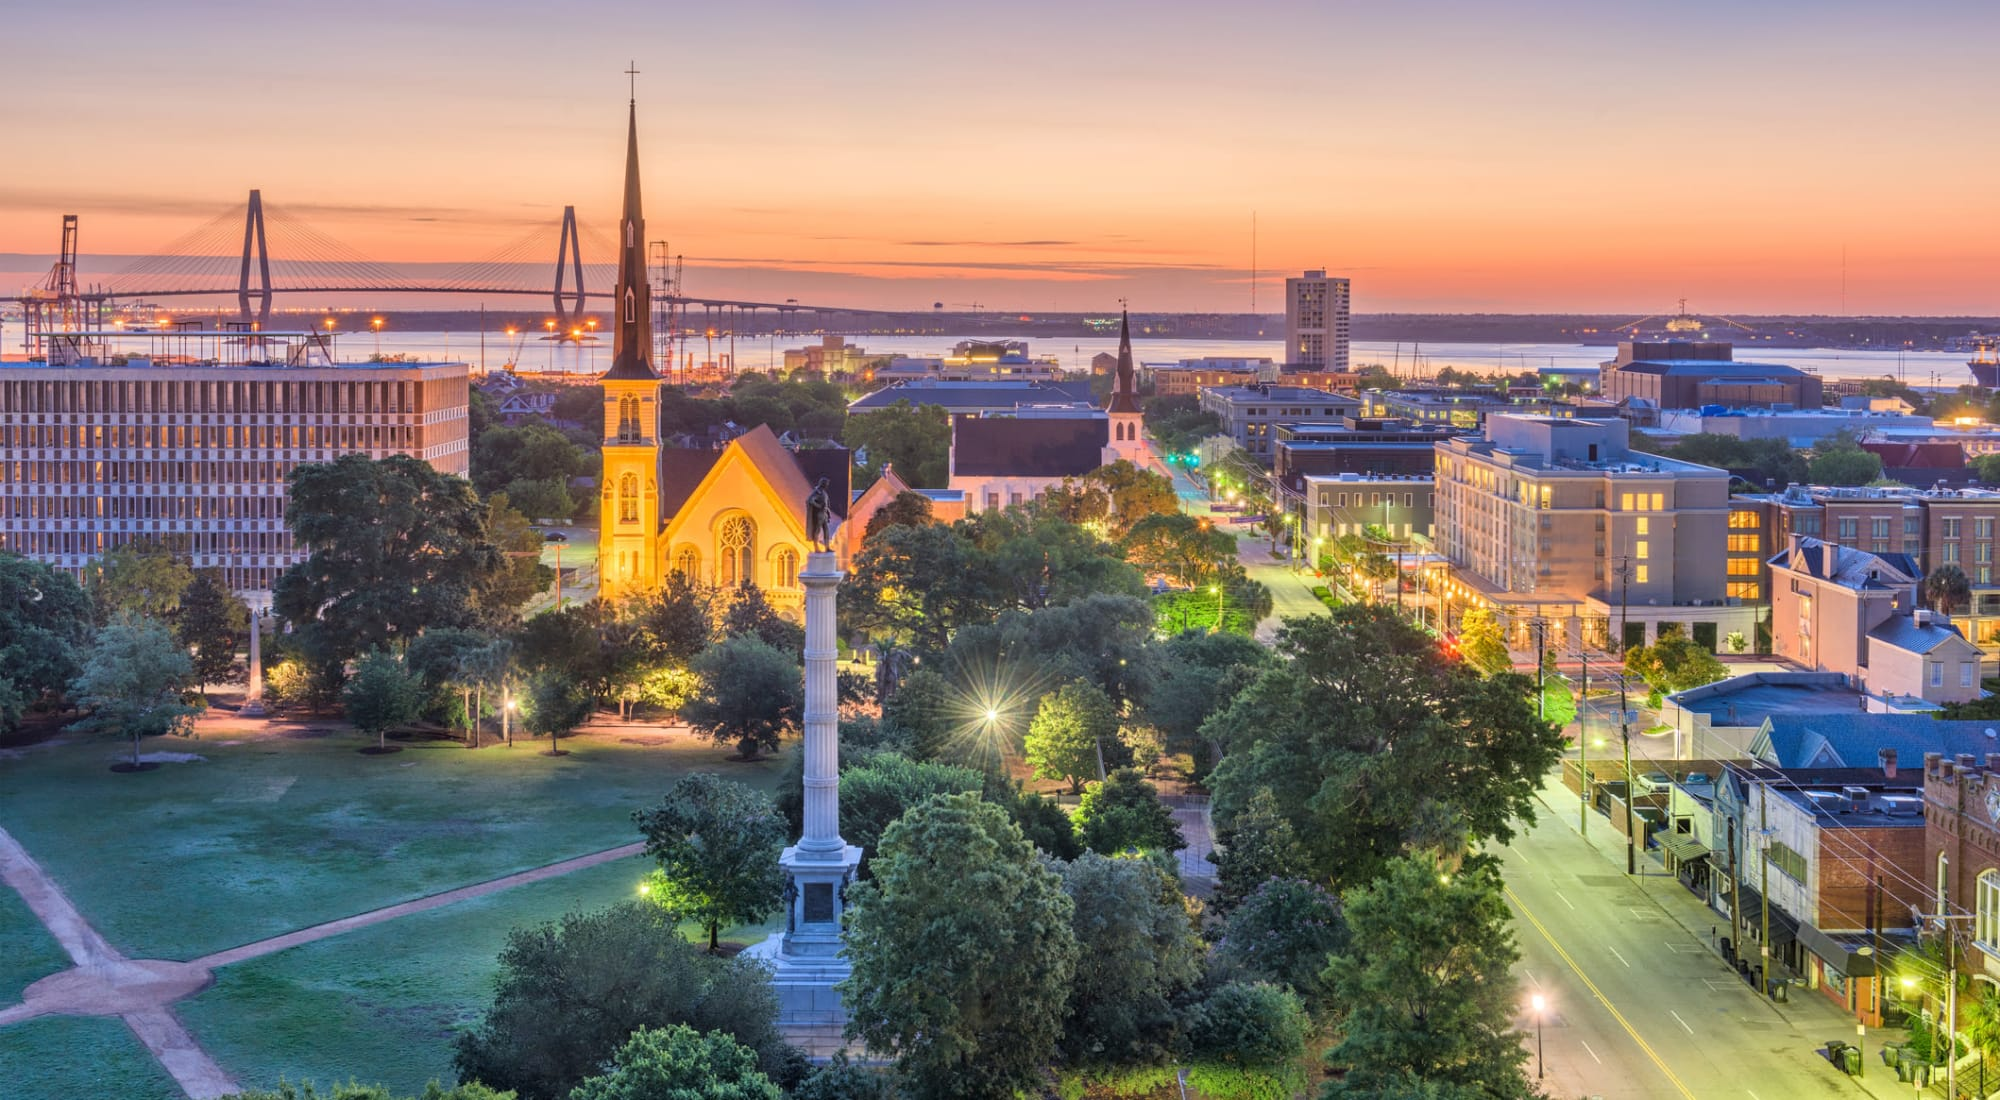 Contact us at 511 Meeting in Charleston, South Carolina